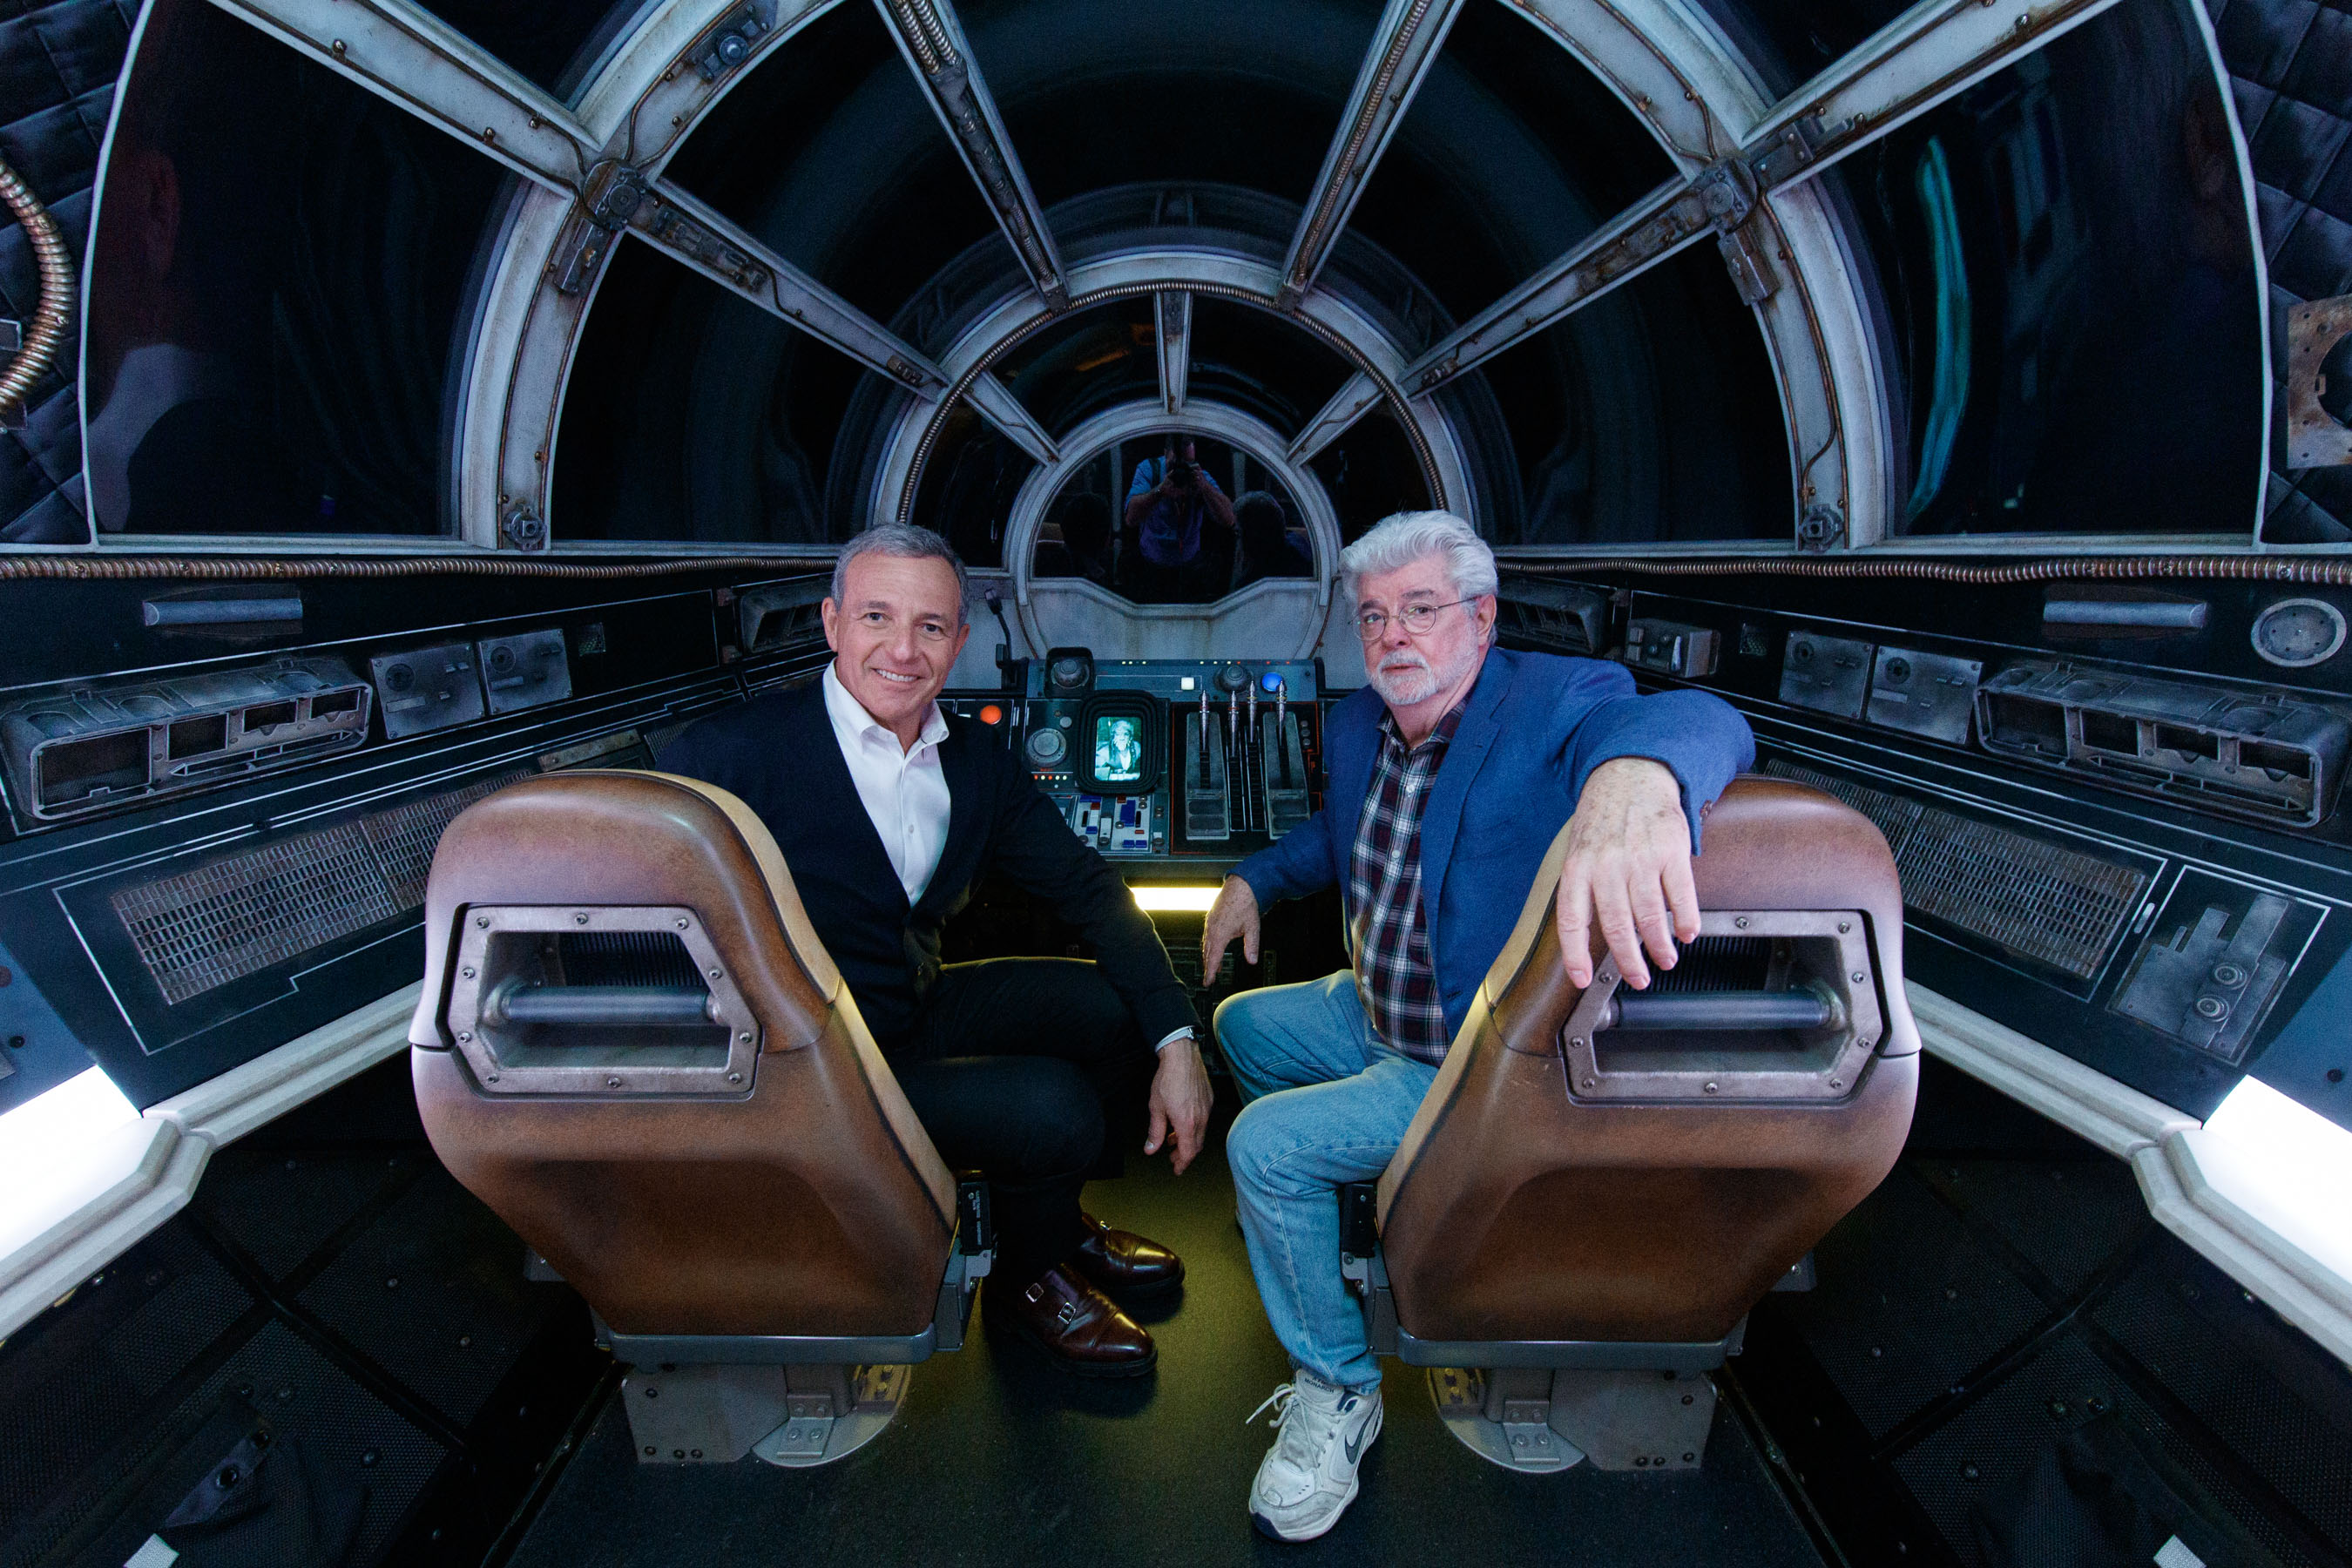 Bob Iger, Walt Disney Company Chairman and CEO (left), and George Lucas, Star Wars creator, pose inside Millennium Falcon: Smugglers Run